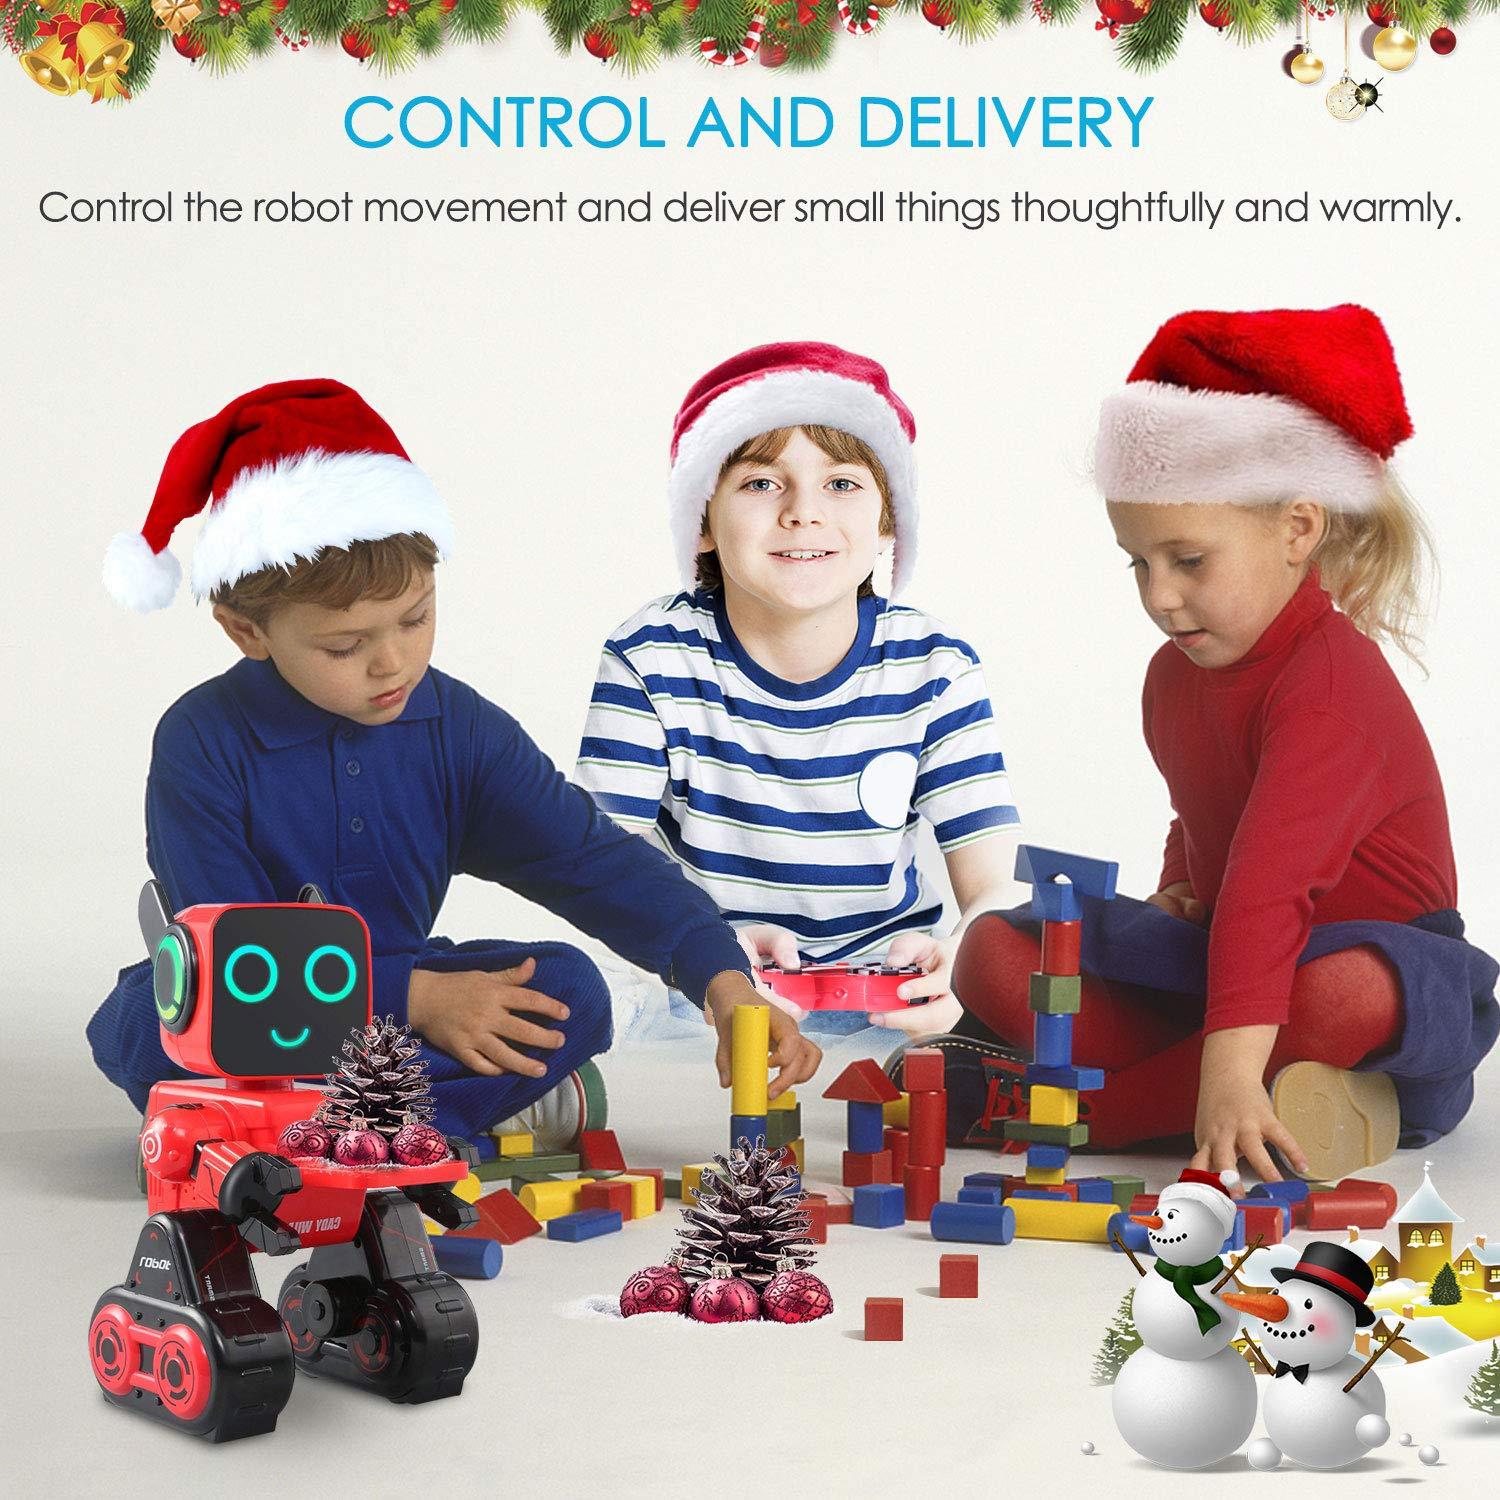 IHBUDS Programmable Remote Control Toy Robot for Kids,Touch & Sound Control, Speaks, Dance Moves, Plays Music. Built-in Coin Bank.Rechargeable RC Robot Kit for Boys, Girls All Ages-Red/Black by IHBUDS (Image #3)